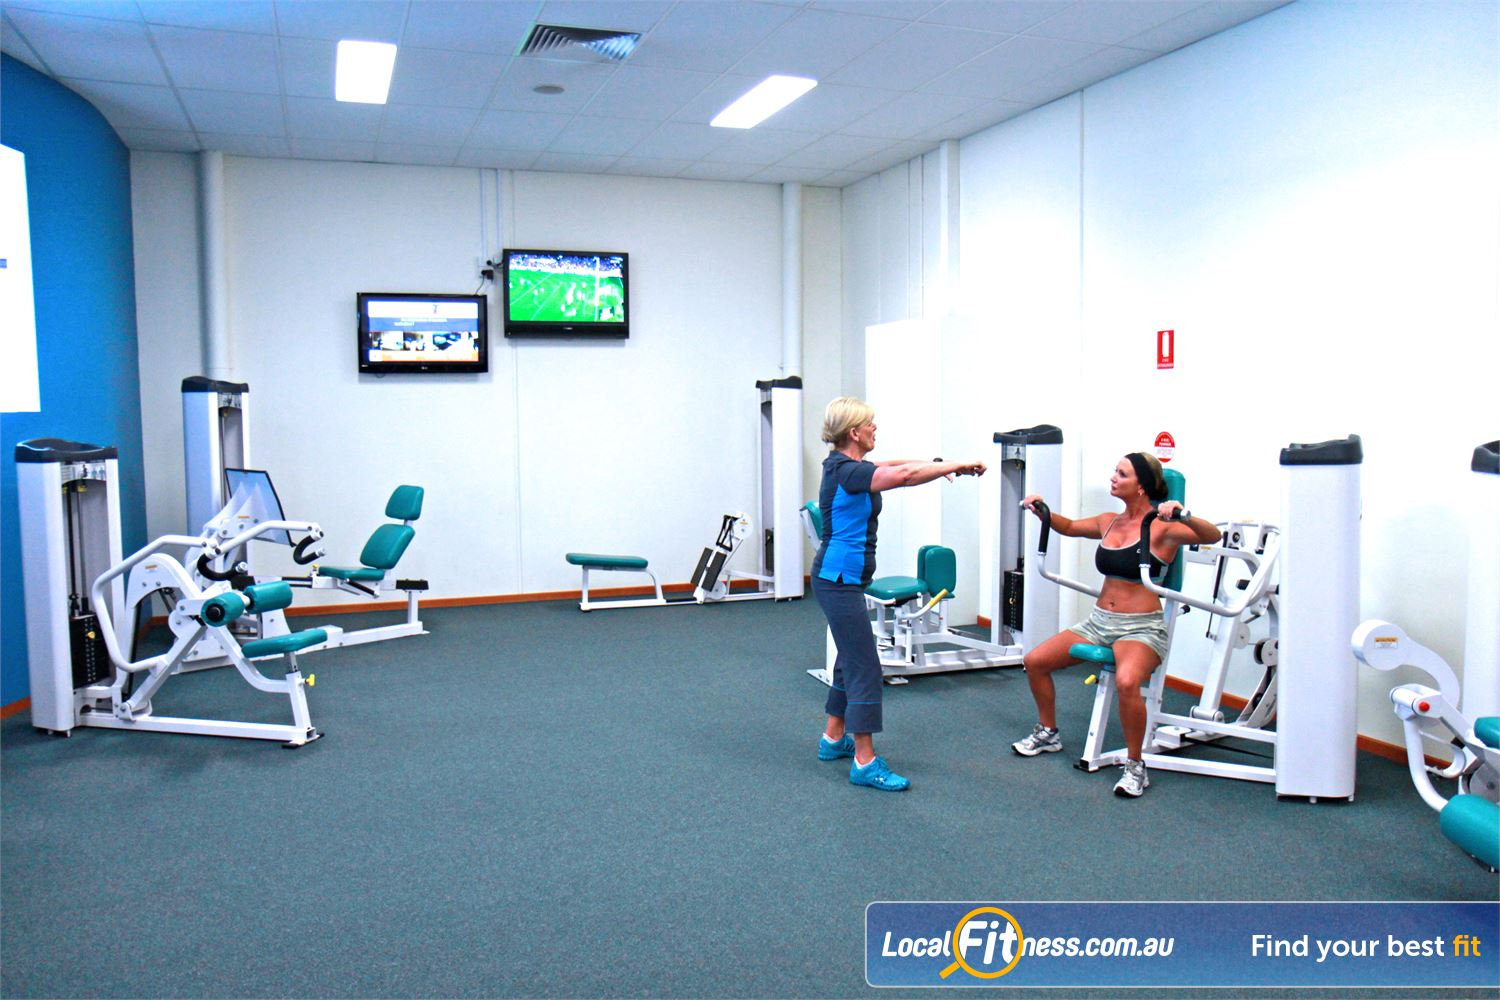 Fernwood Fitness Waurn Ponds Our Waurn Ponds womens gym is conveniently located at the Waurn Ponds Plaza.